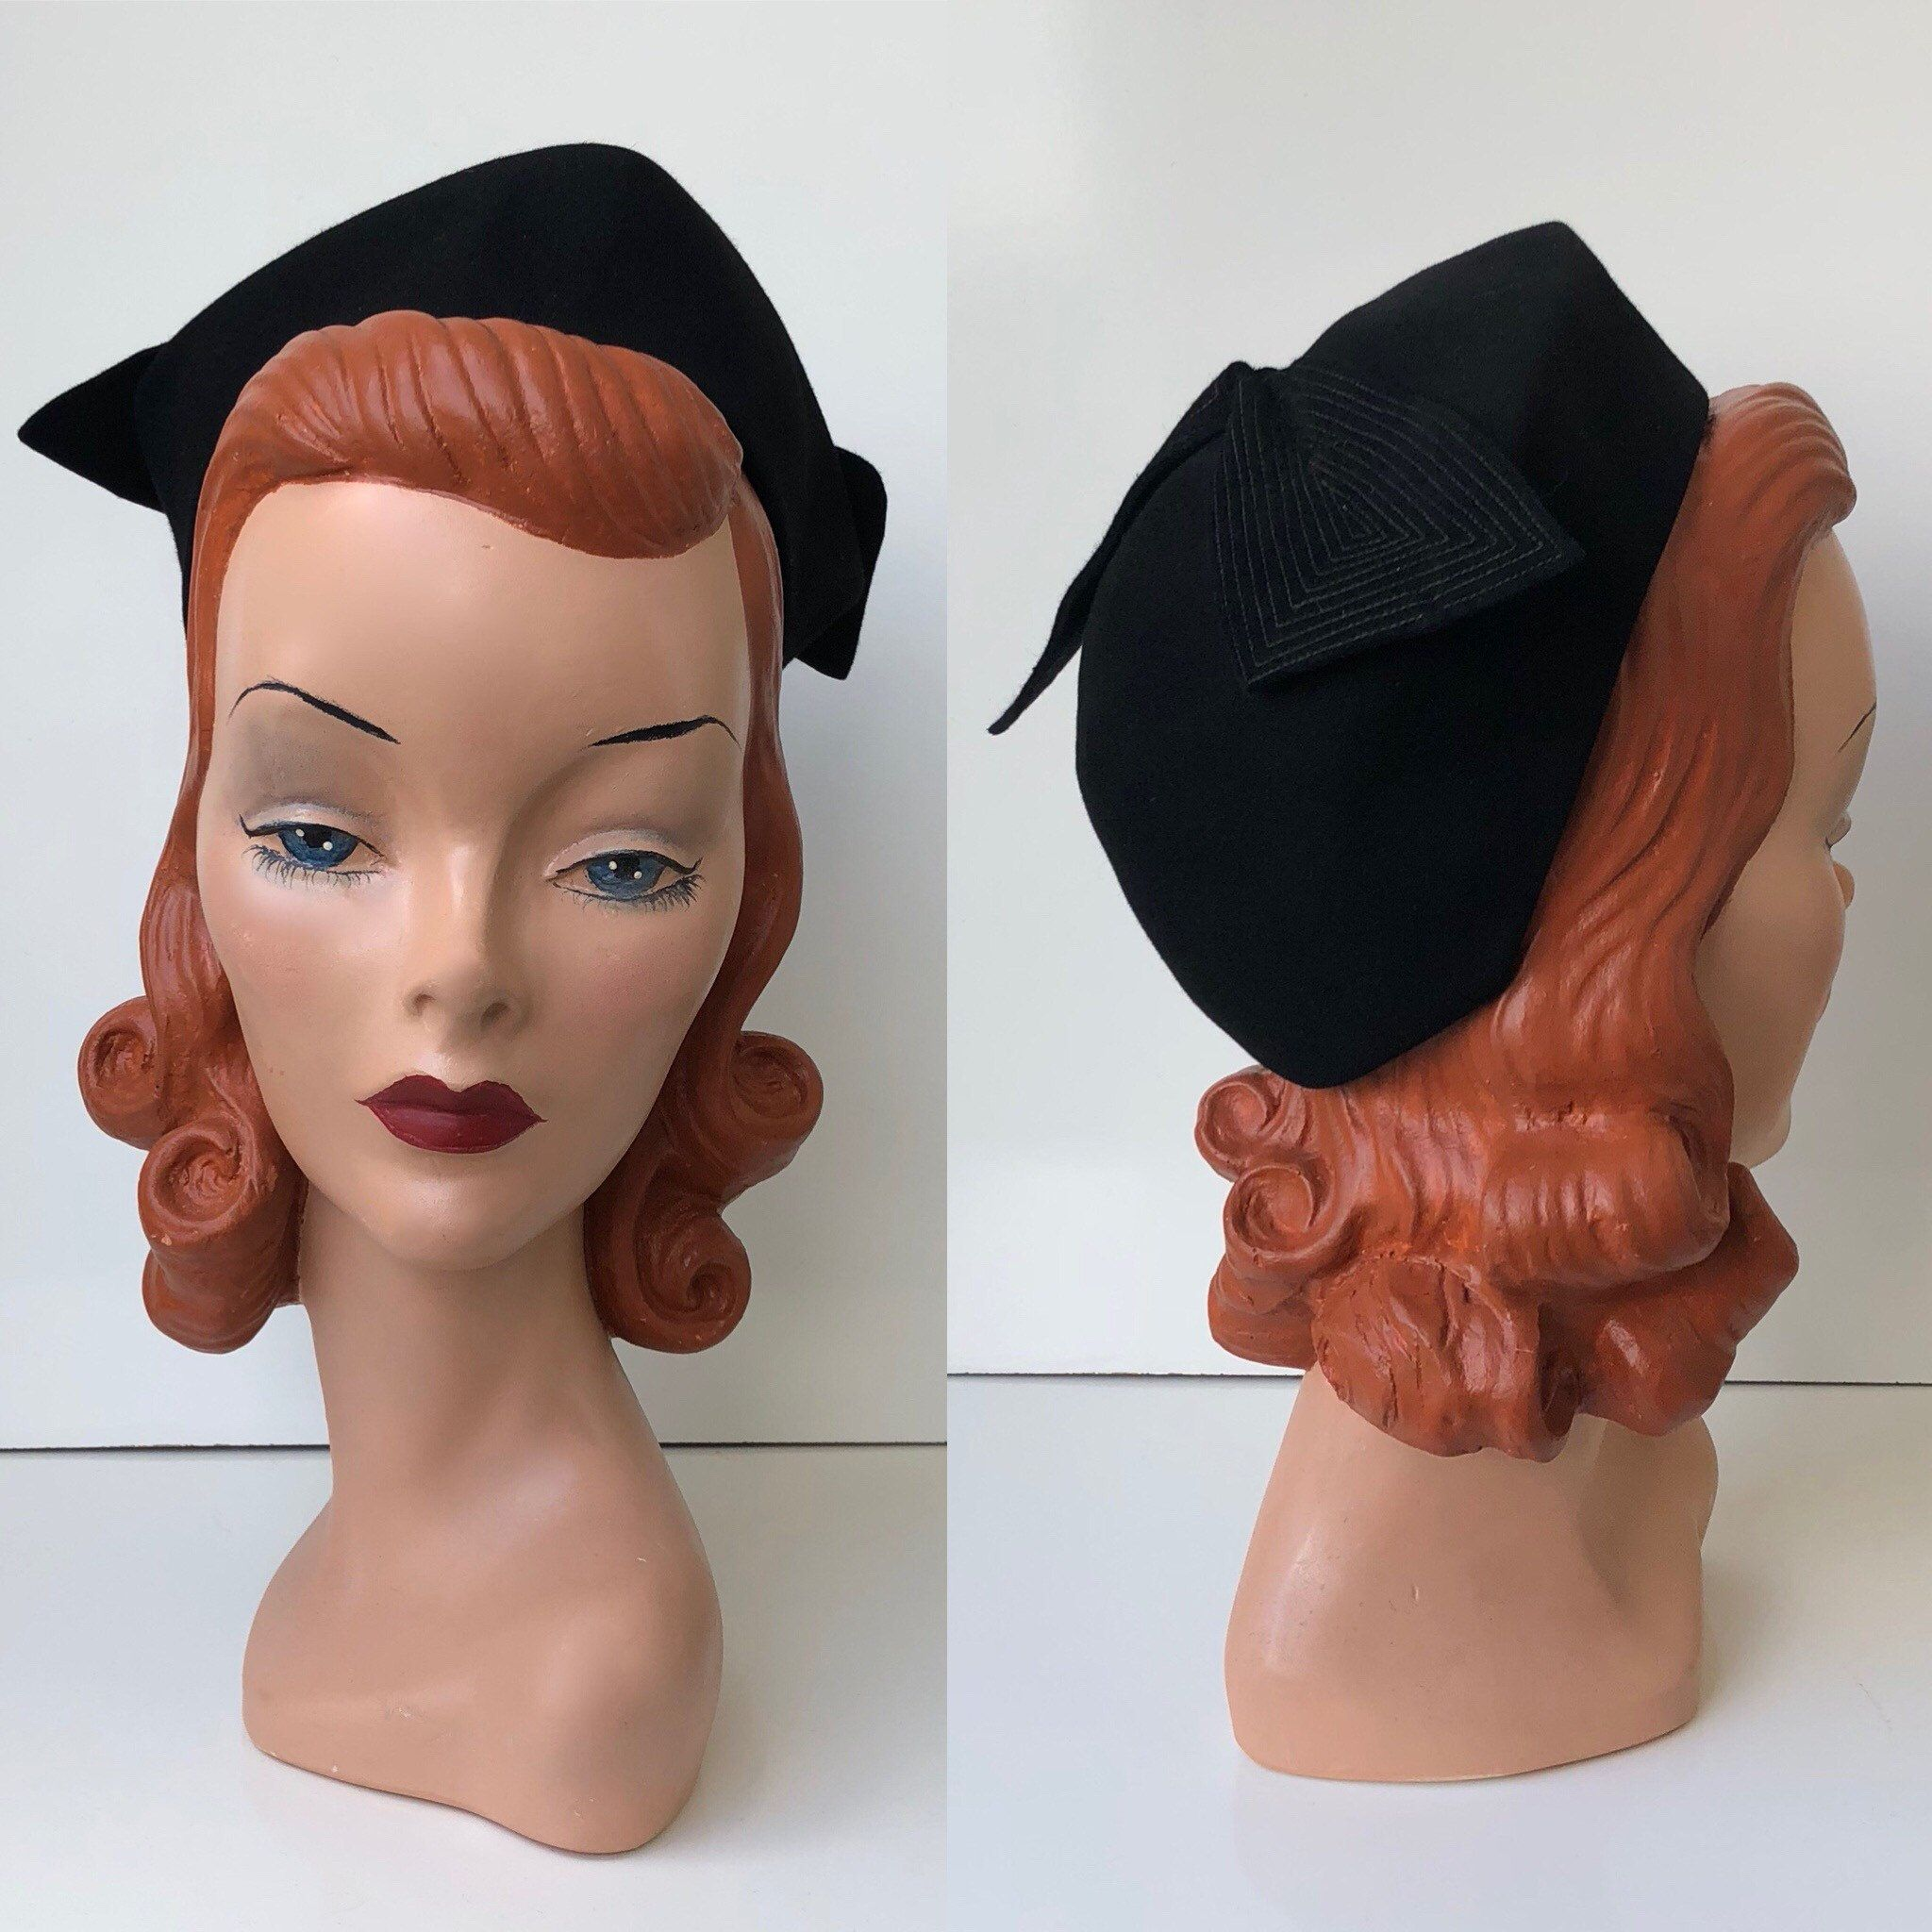 680d0dea285 1940 s John Wanamaker Inky Black Wool Felt Tricorn Toque Hat with Exposed  Stitch Dramatic Bow by VeraciousVintageCo on Etsy